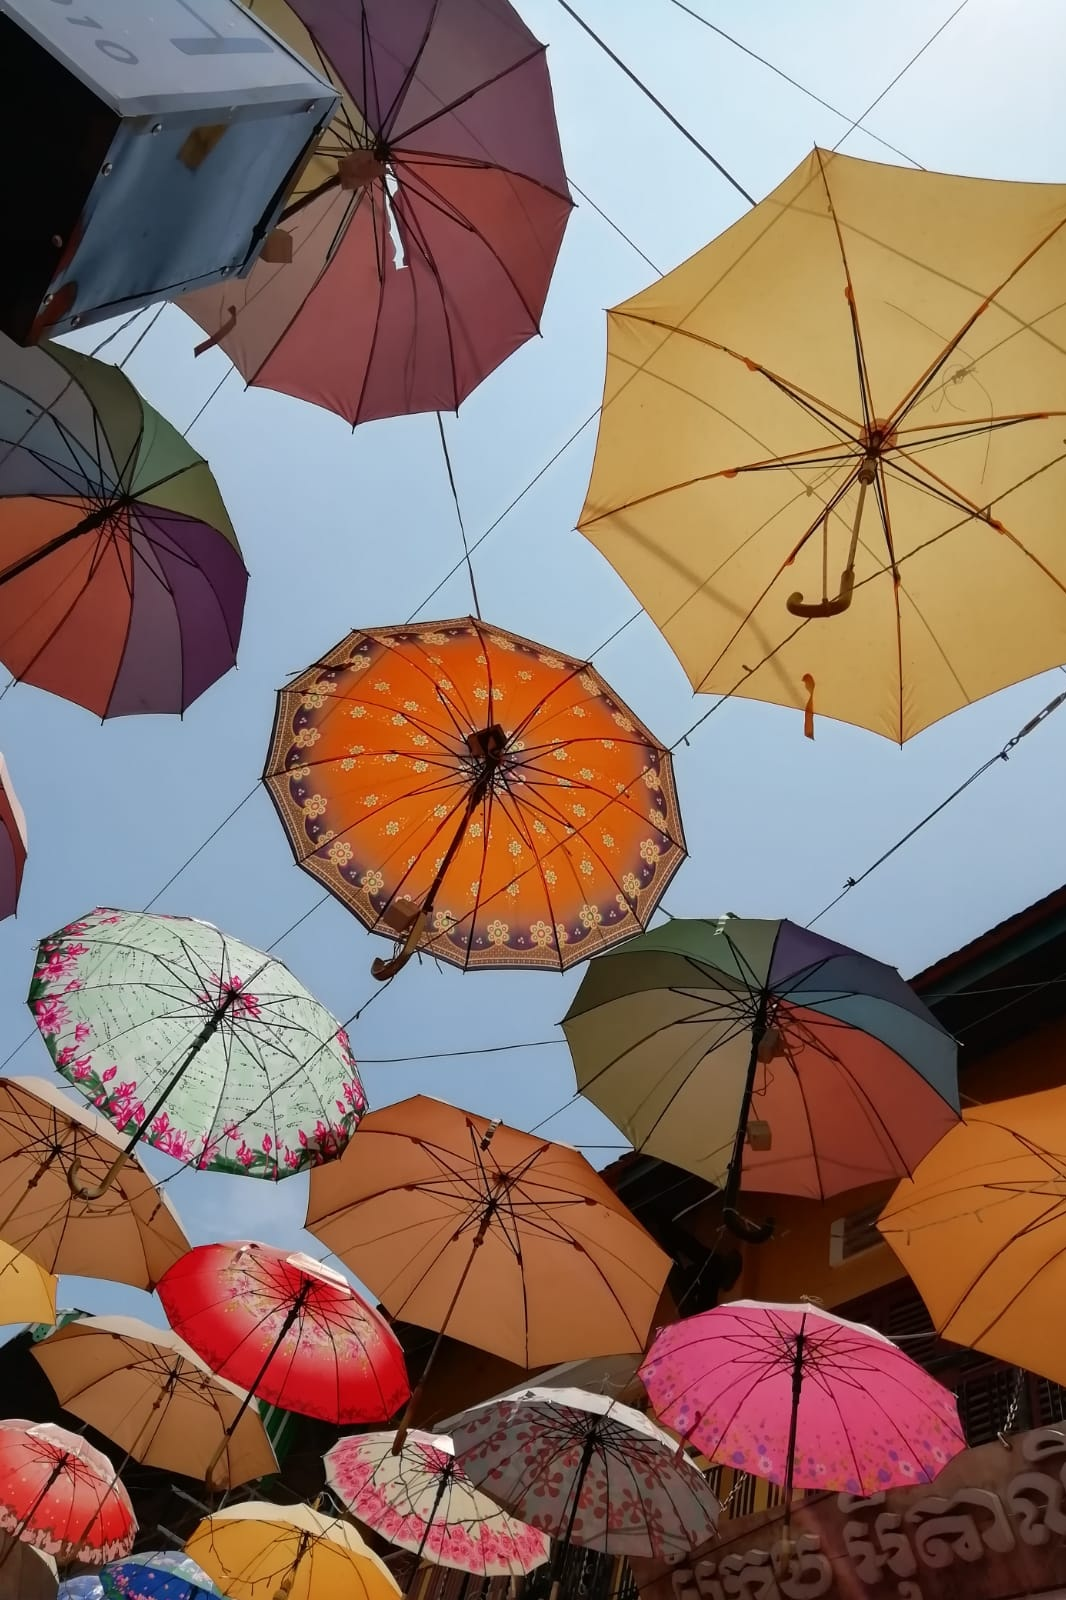 Umbrellas in the sun. Outside the great fair fashion store Blush Boutique in Siem Reap.